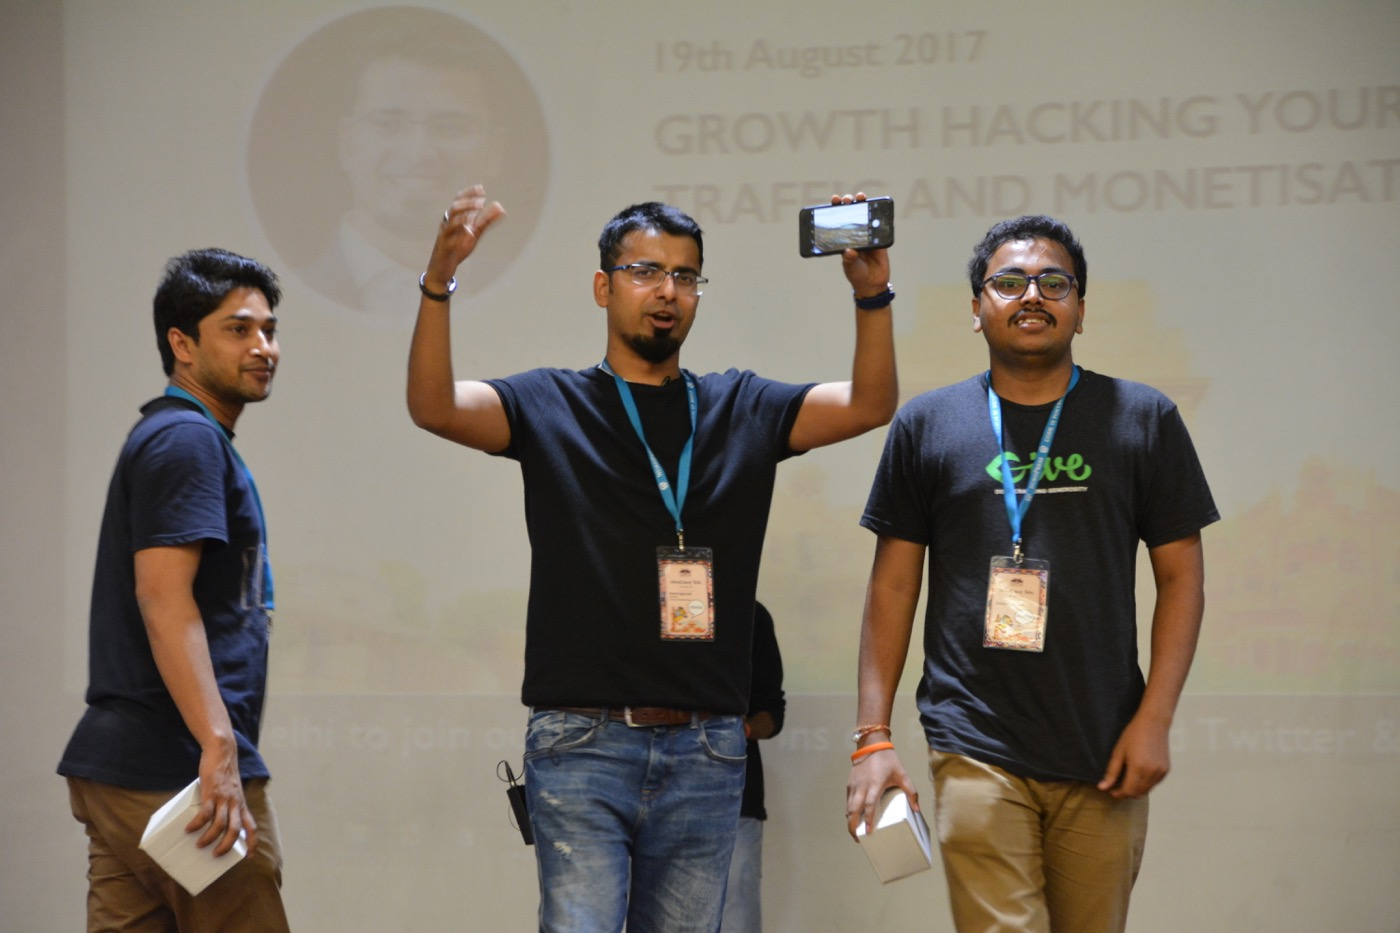 WordCamp Delhi 2017 Growth Hacking Slide Deck & Photos